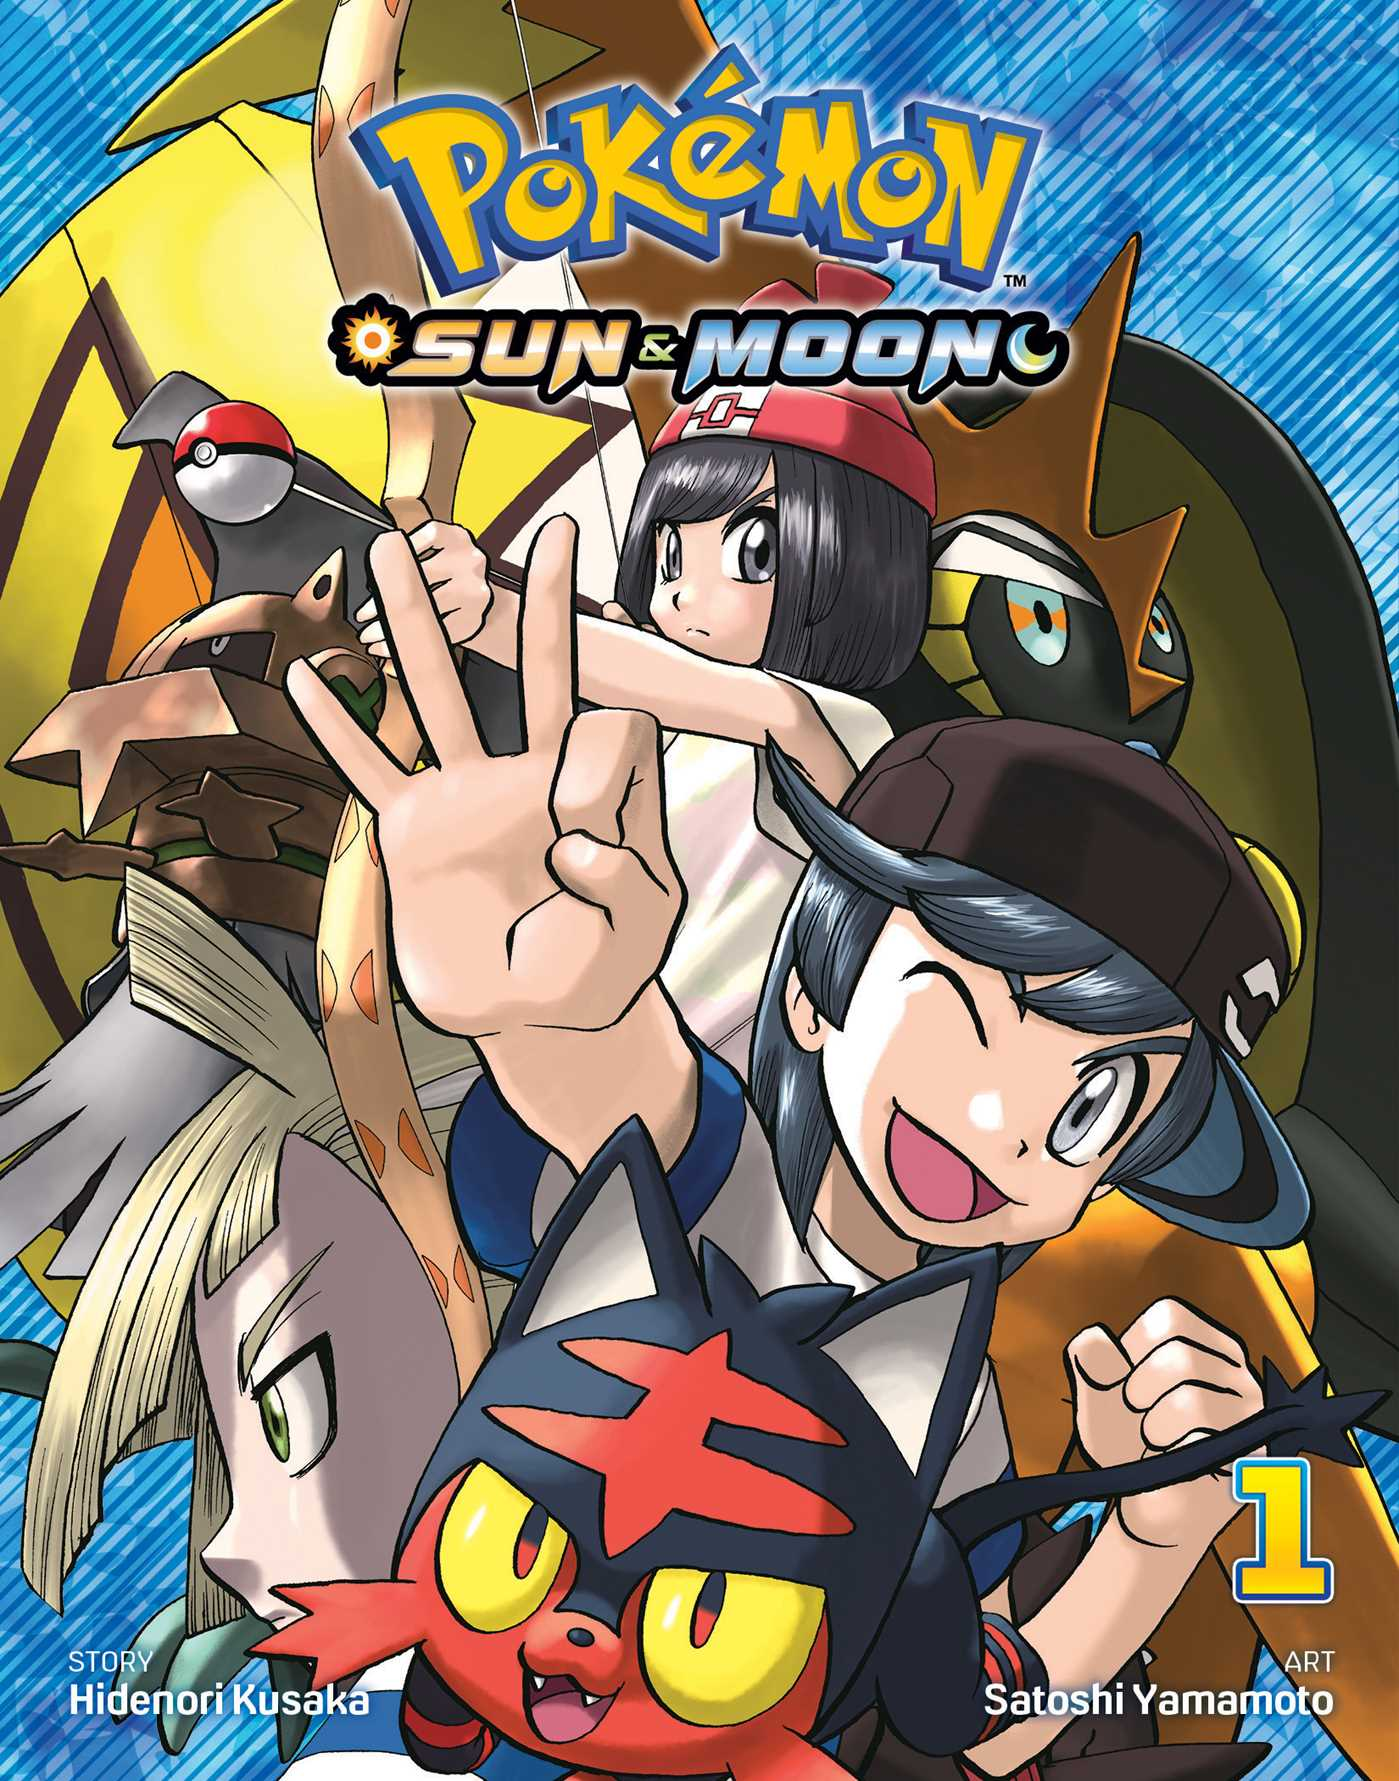 Pokemon sun moon vol 1 9781974700752 hr